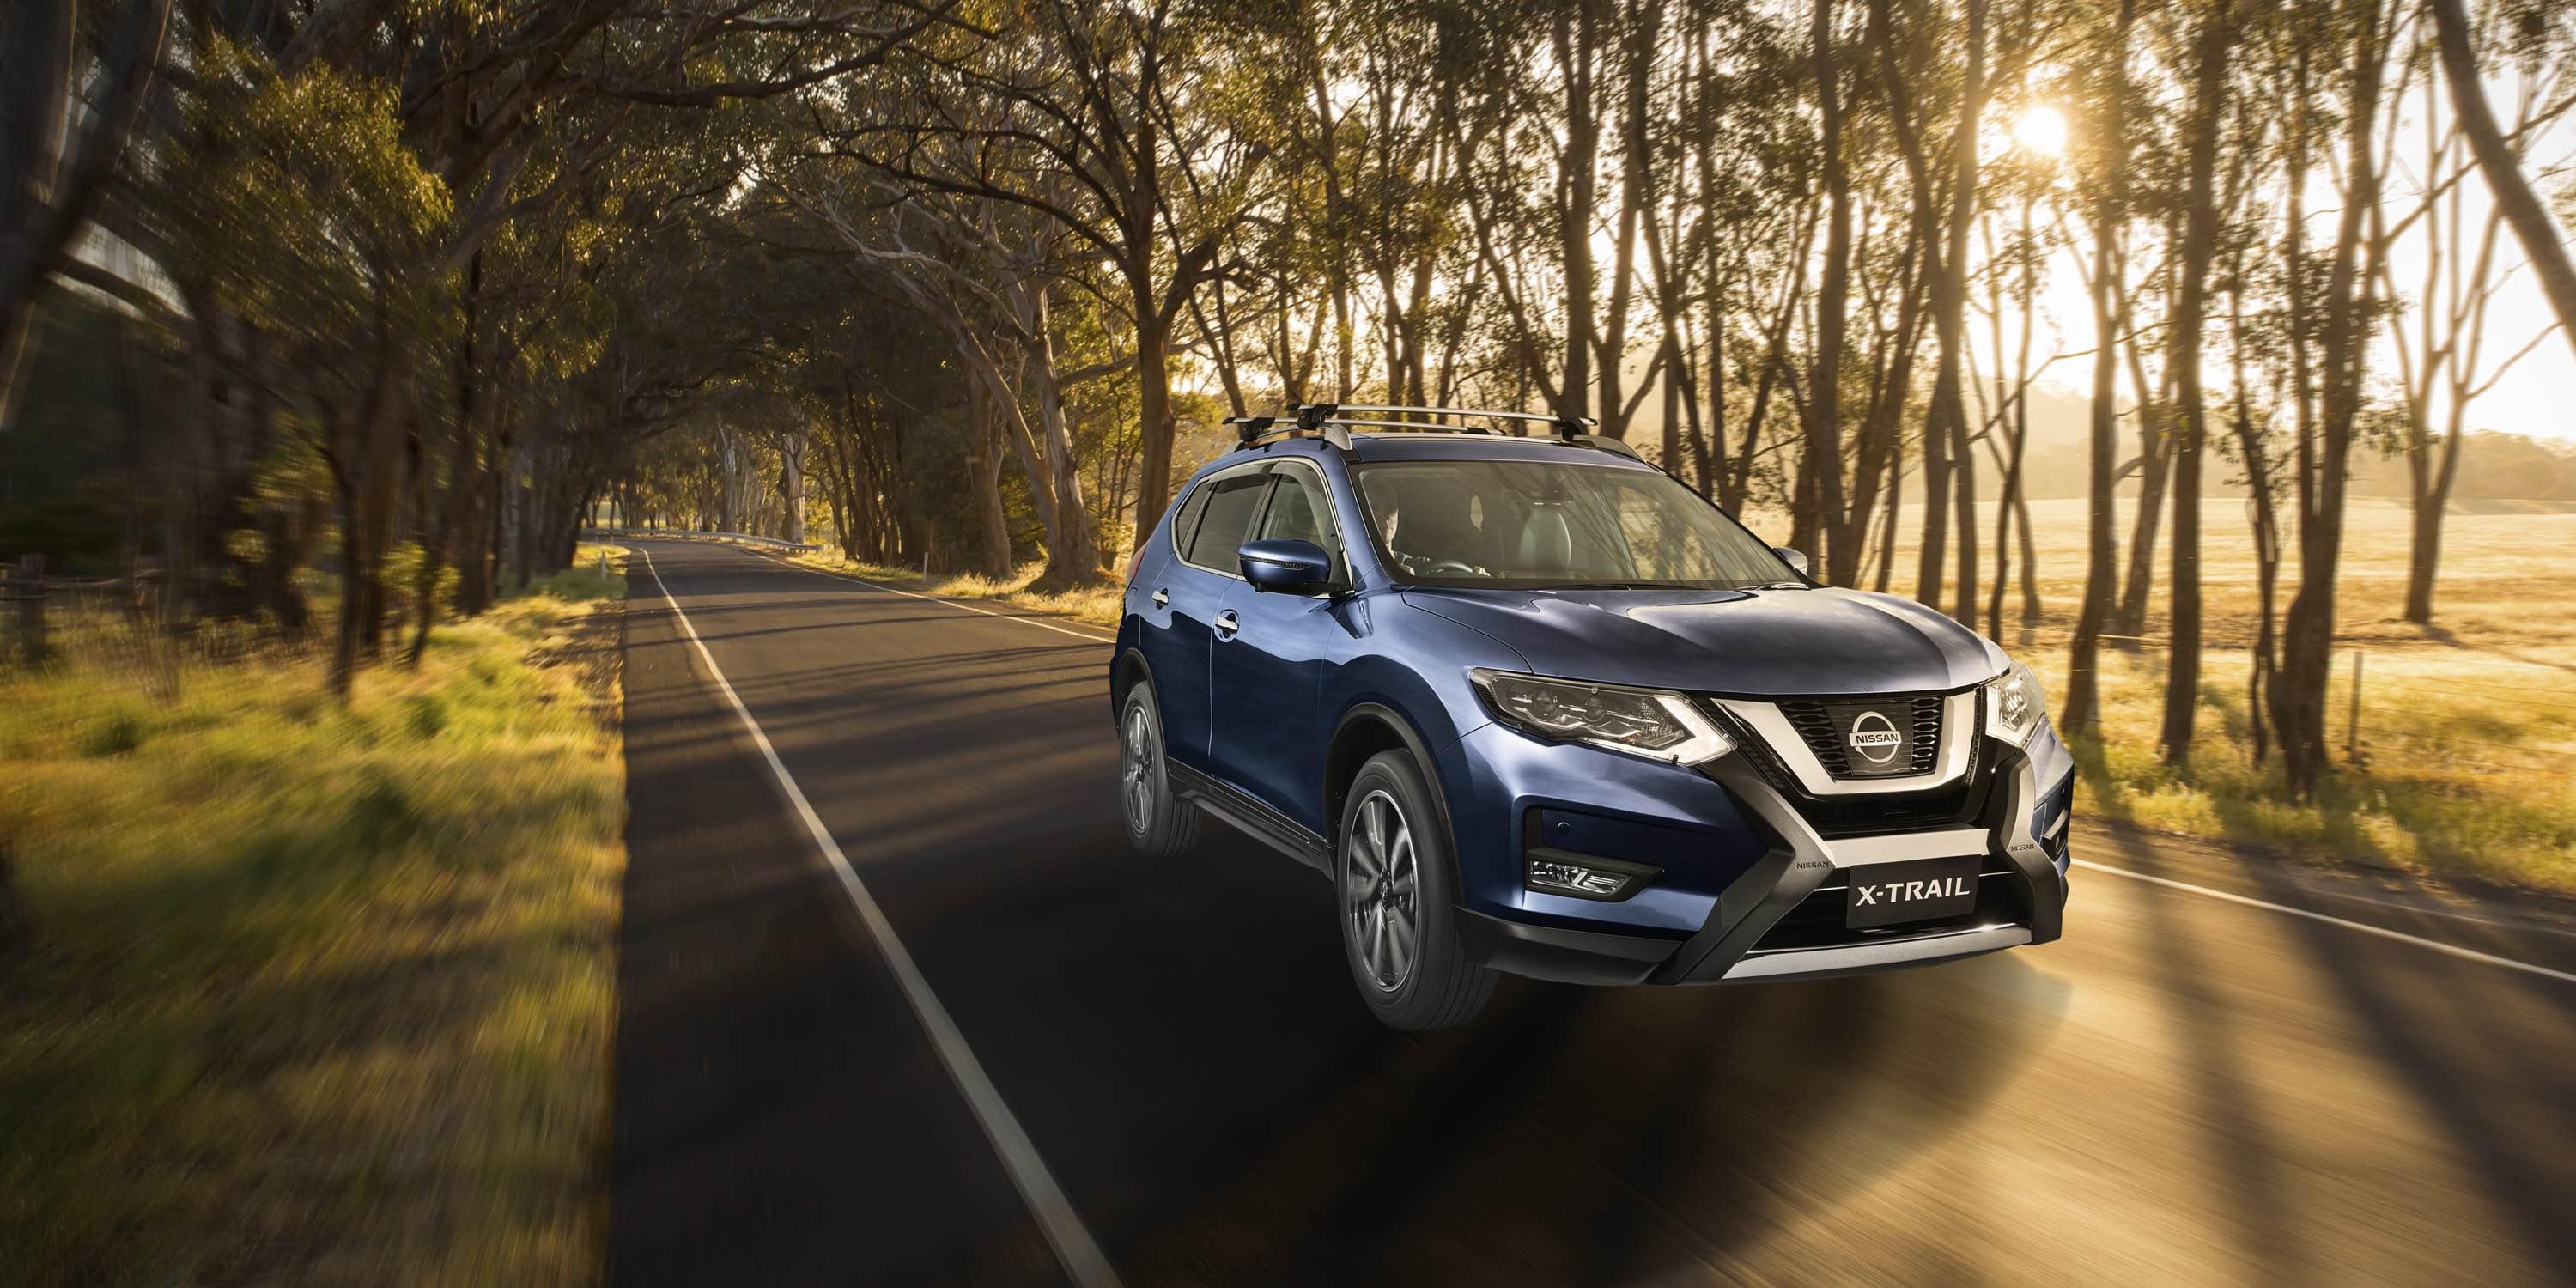 Marine Blue X-TRAIL driving across Australian countryside